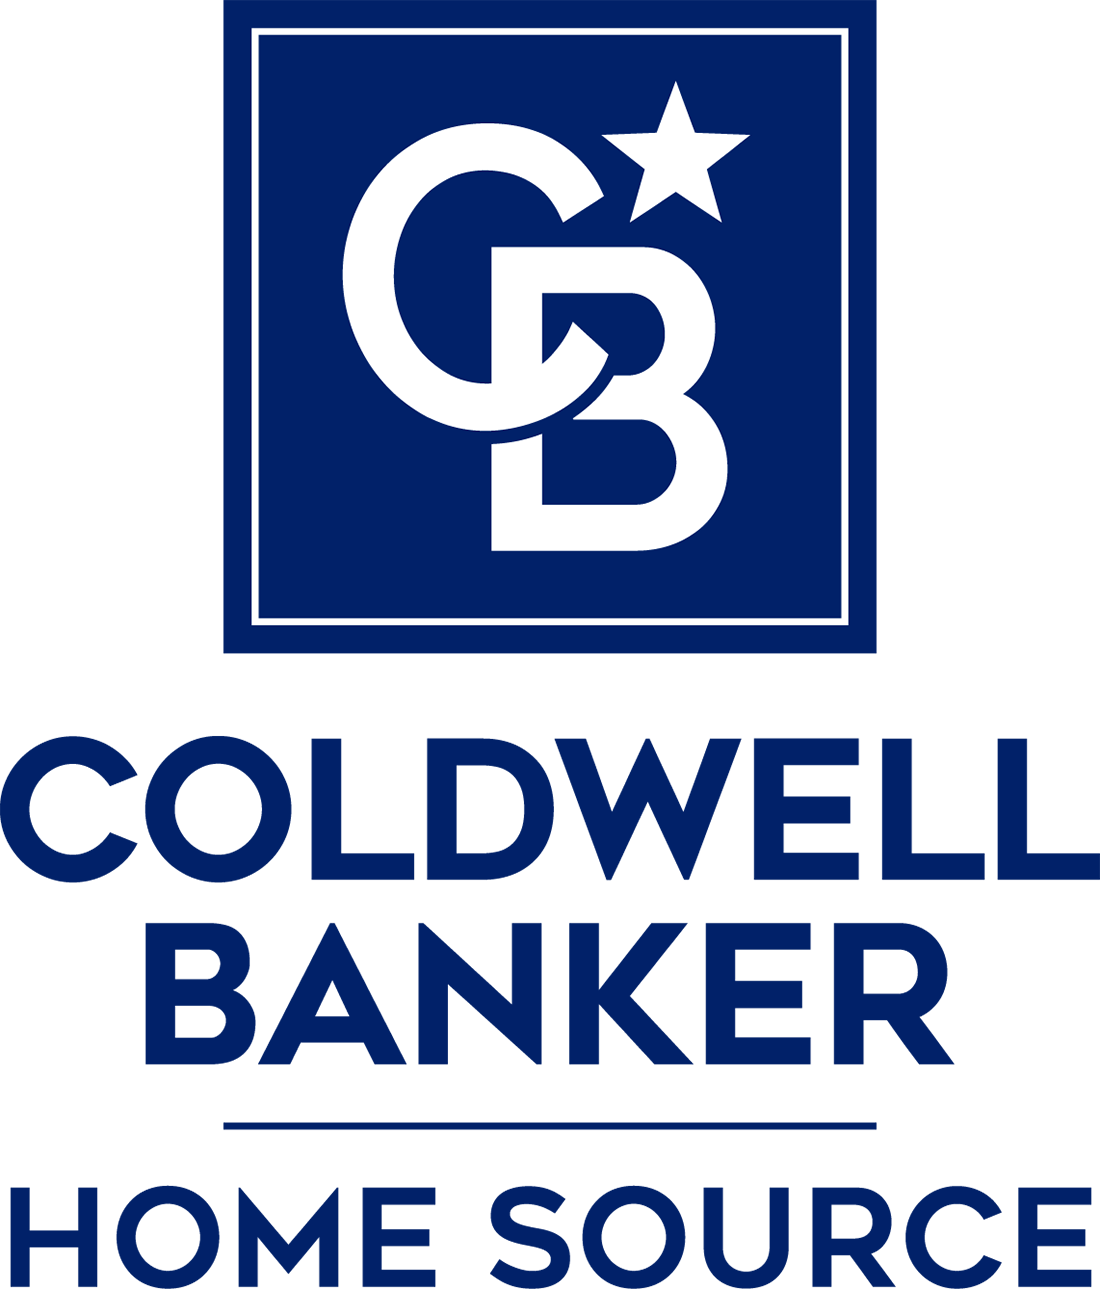 Robyn Morgan - Coldwell Banker Home Source Logo